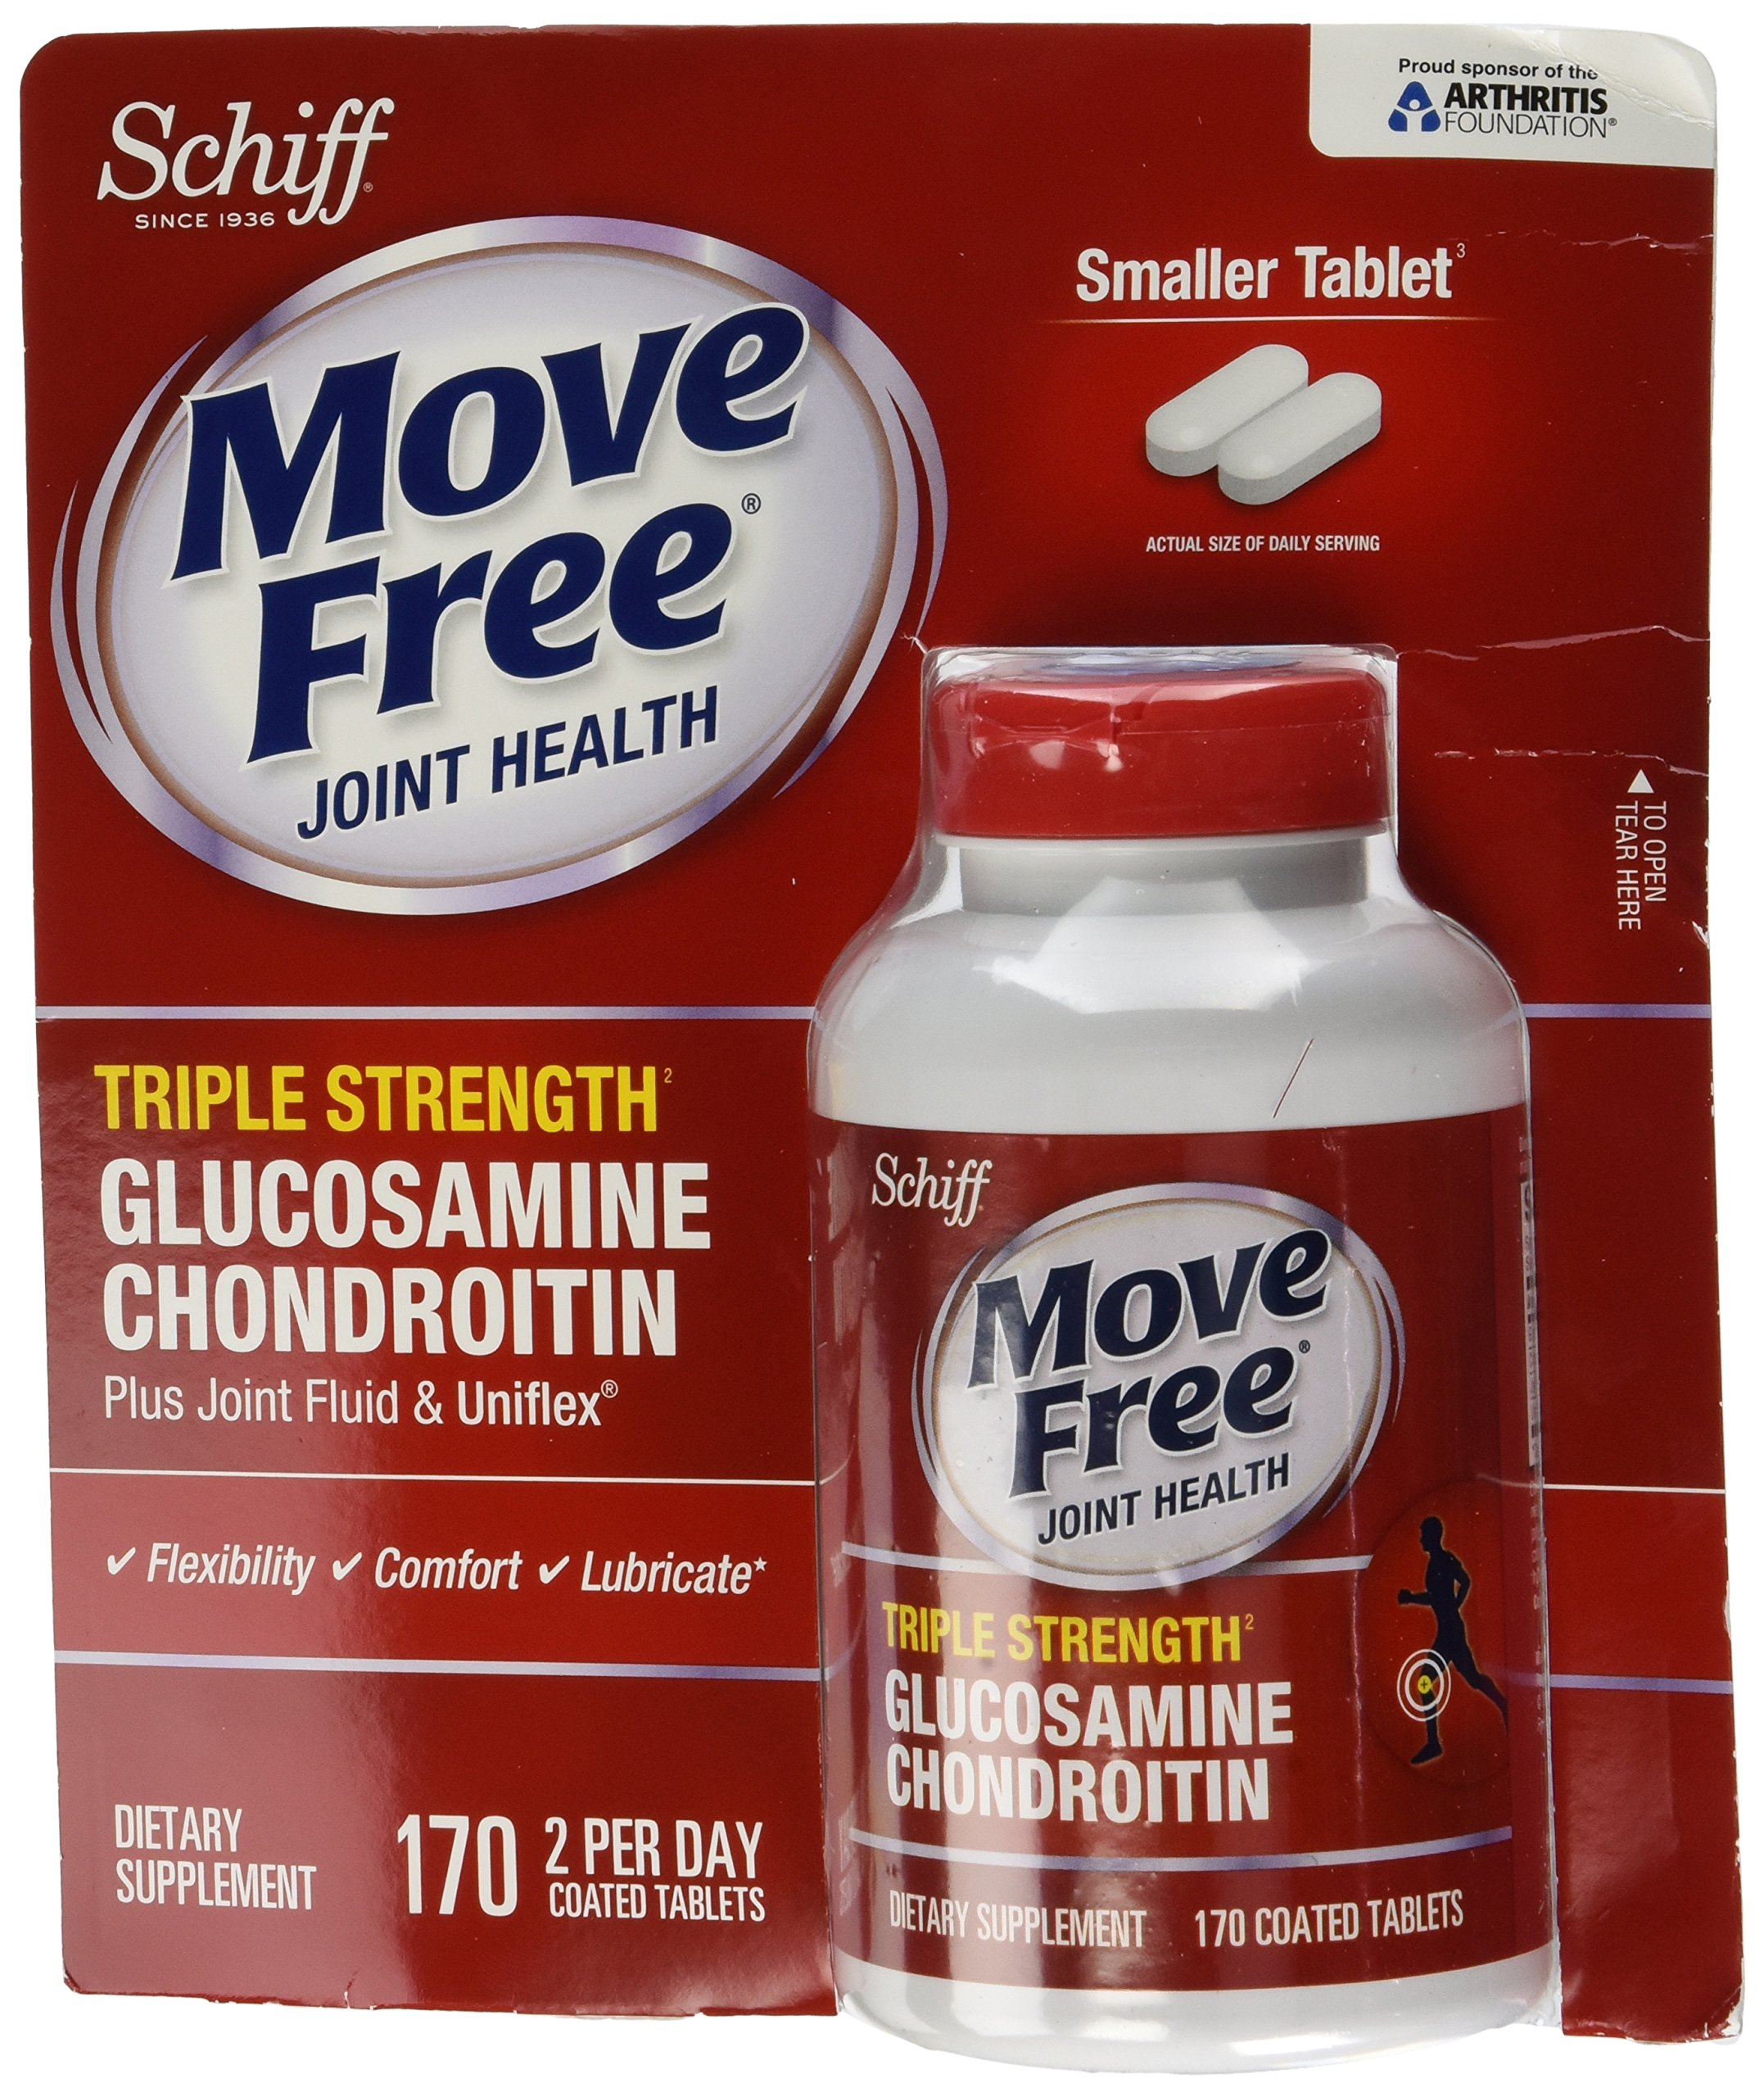 Schiff Move Free Joint Health Triple Strength Glucosamine Chondroitin - 4 Bottles, 170 Tablets Each by Move Free